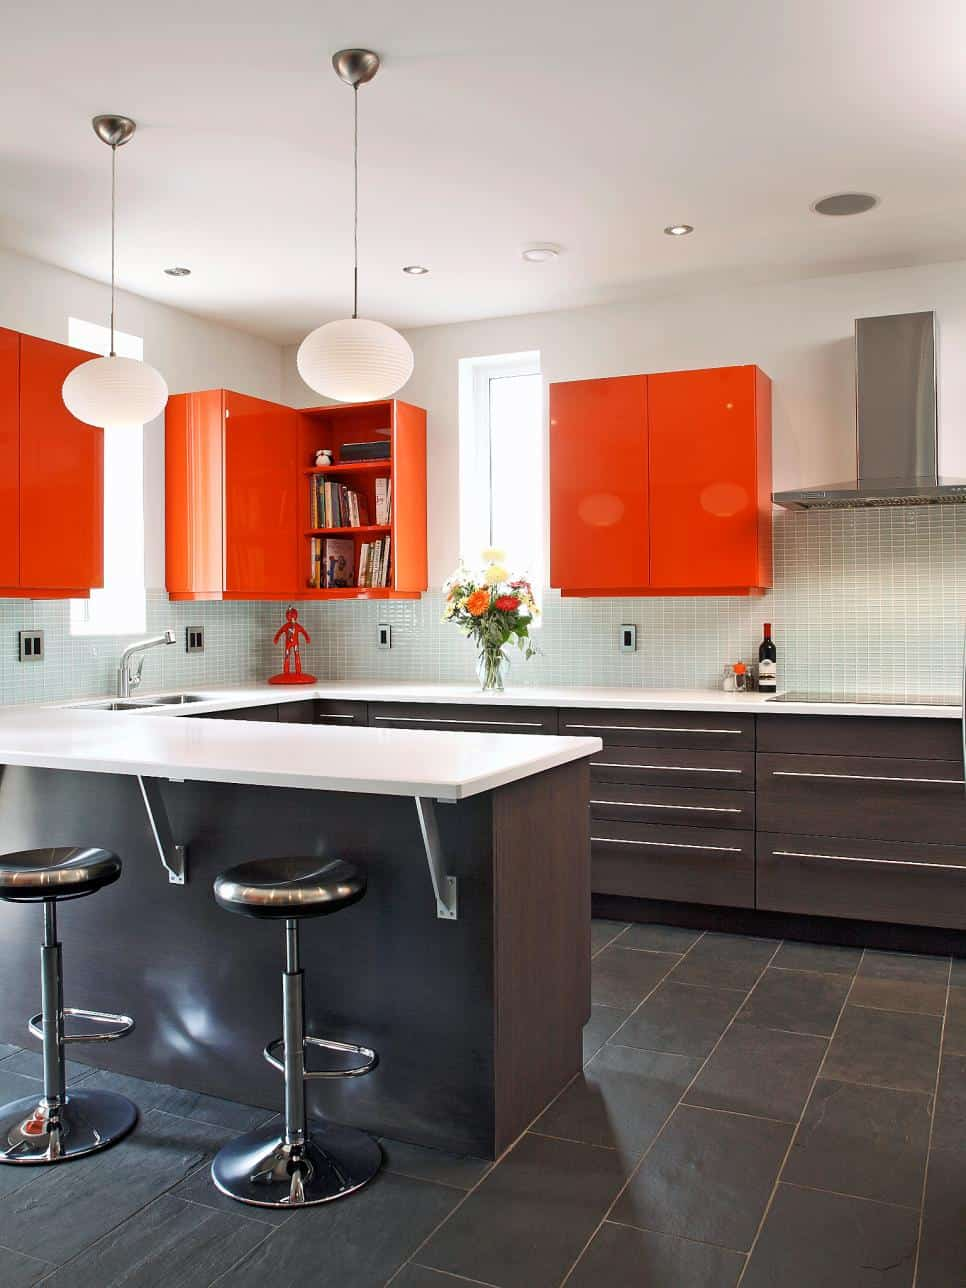 Retro kitchen ideas to upgrade your current kitchen for Kitchen upgrades